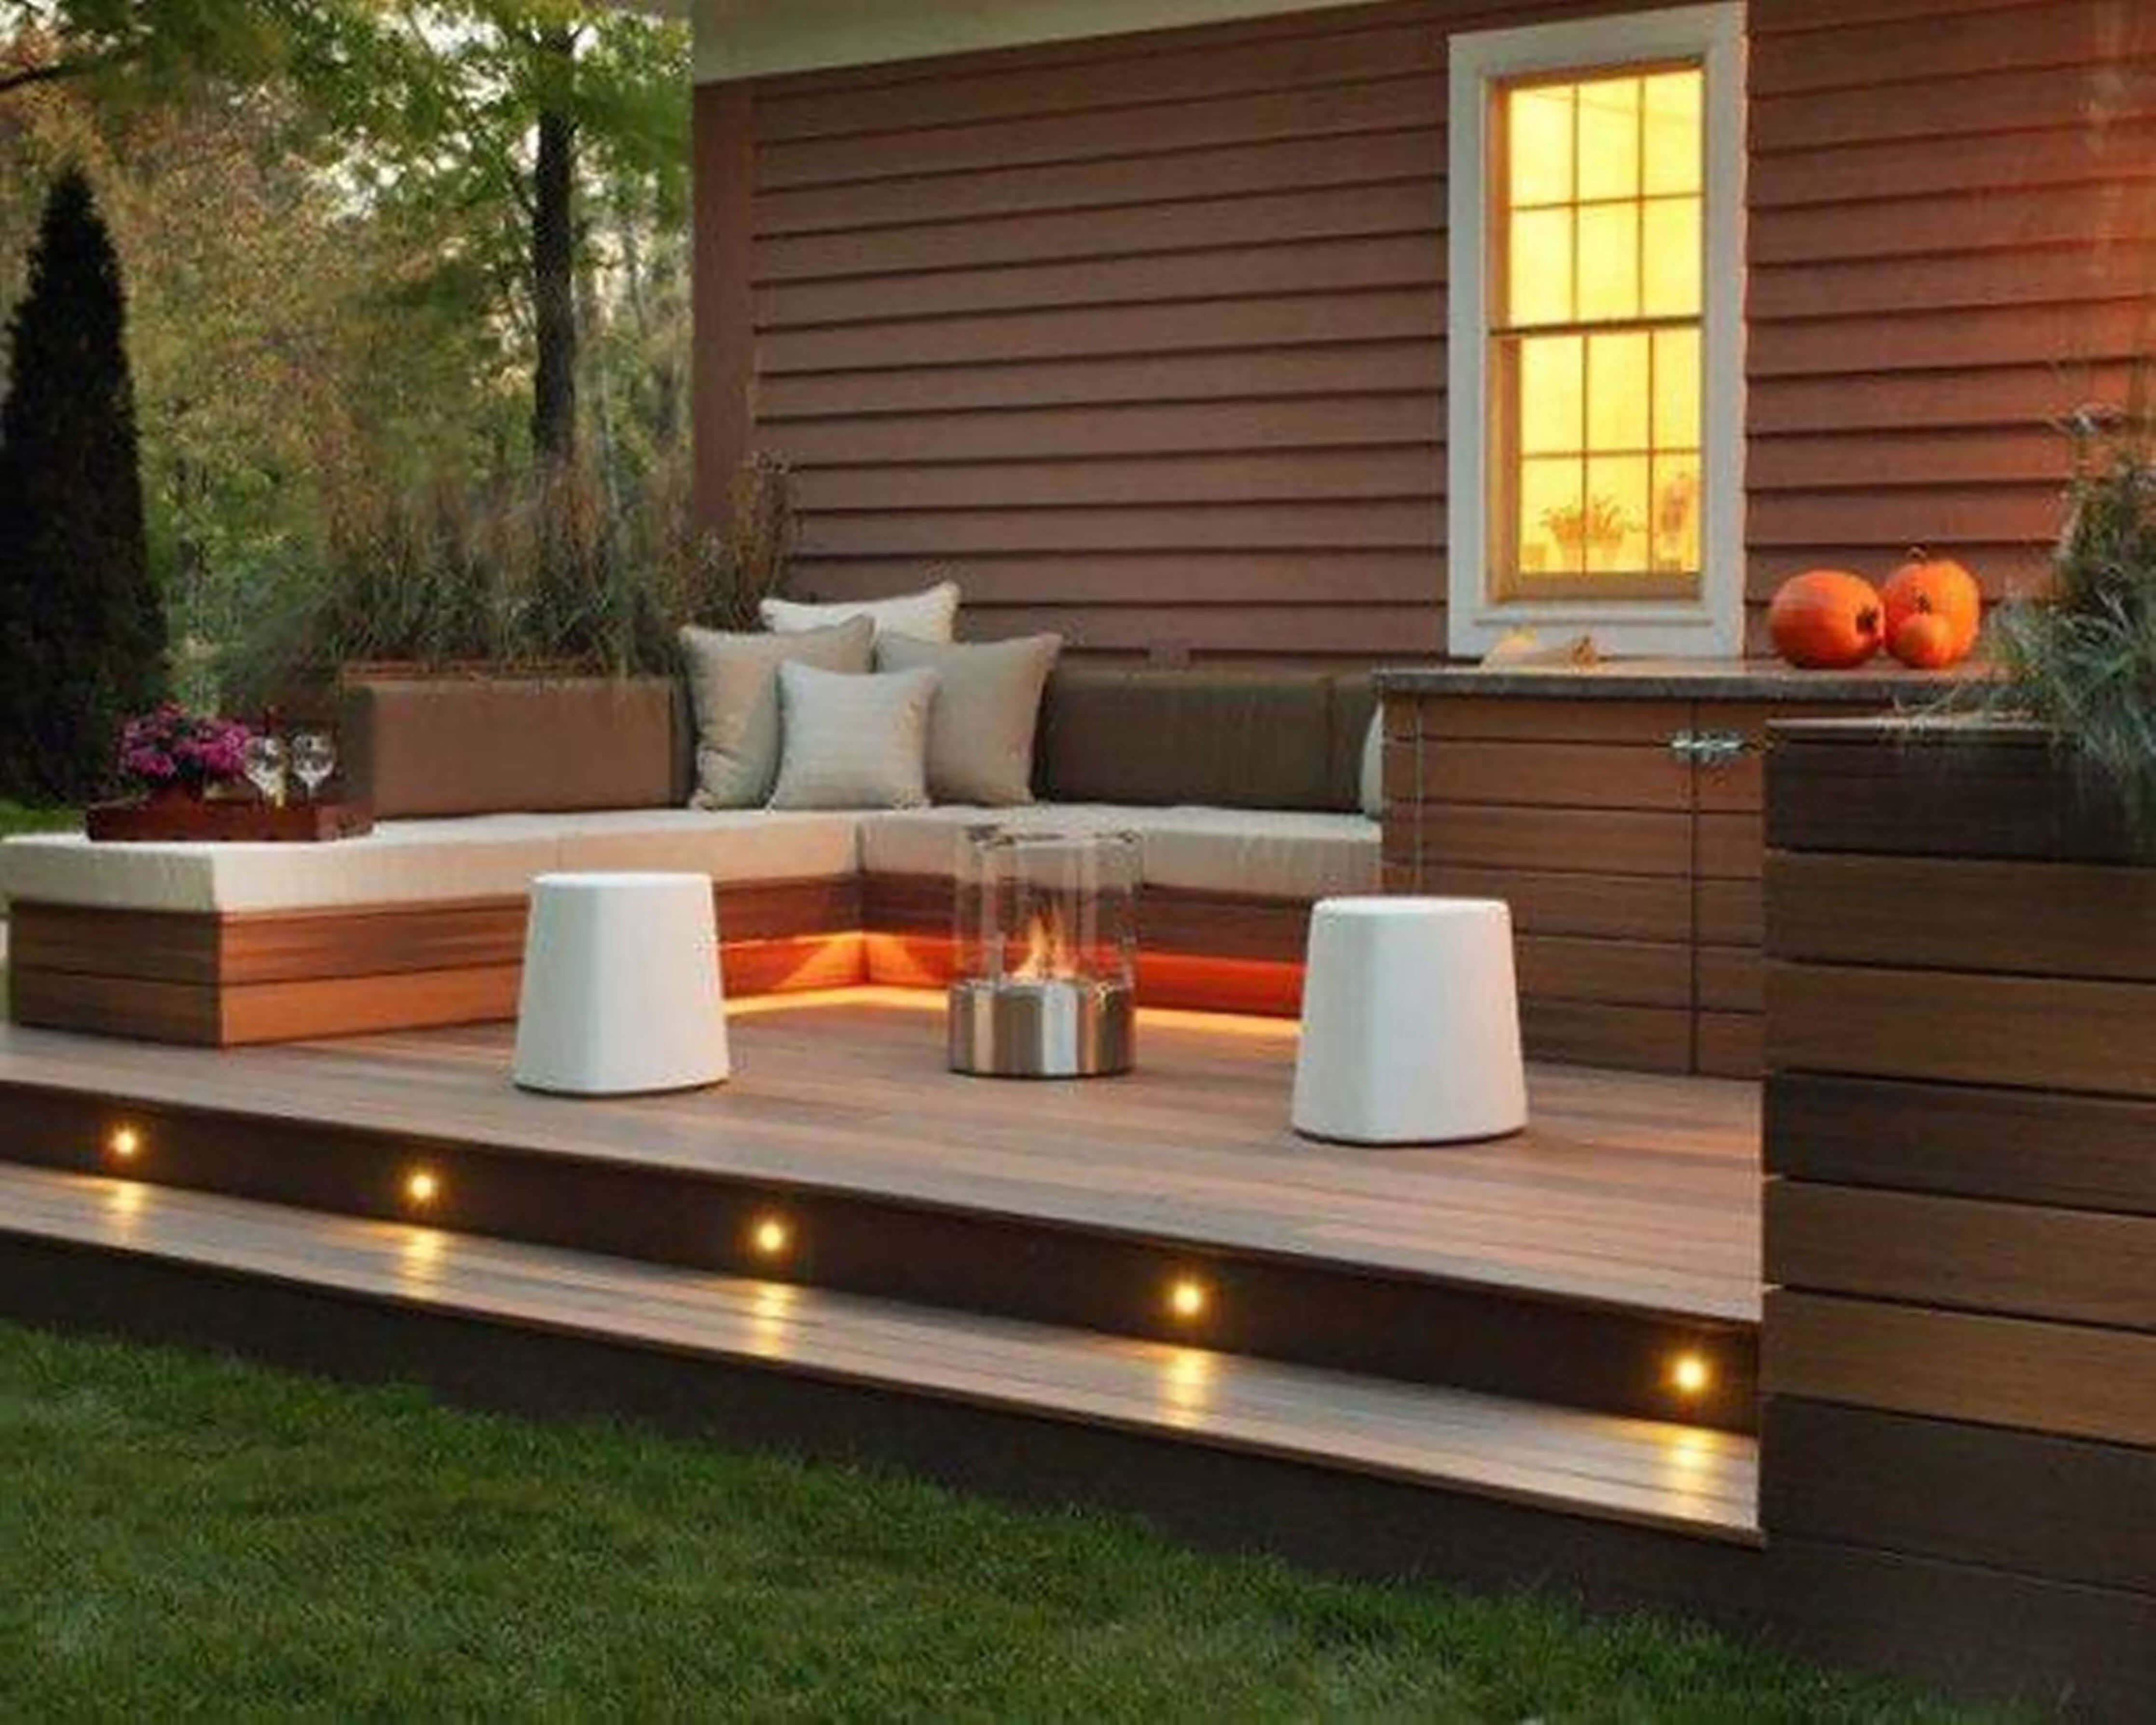 Decks & Outdoor Spaces | Rosengarten Construction on Small Back Deck Decorating Ideas id=78831